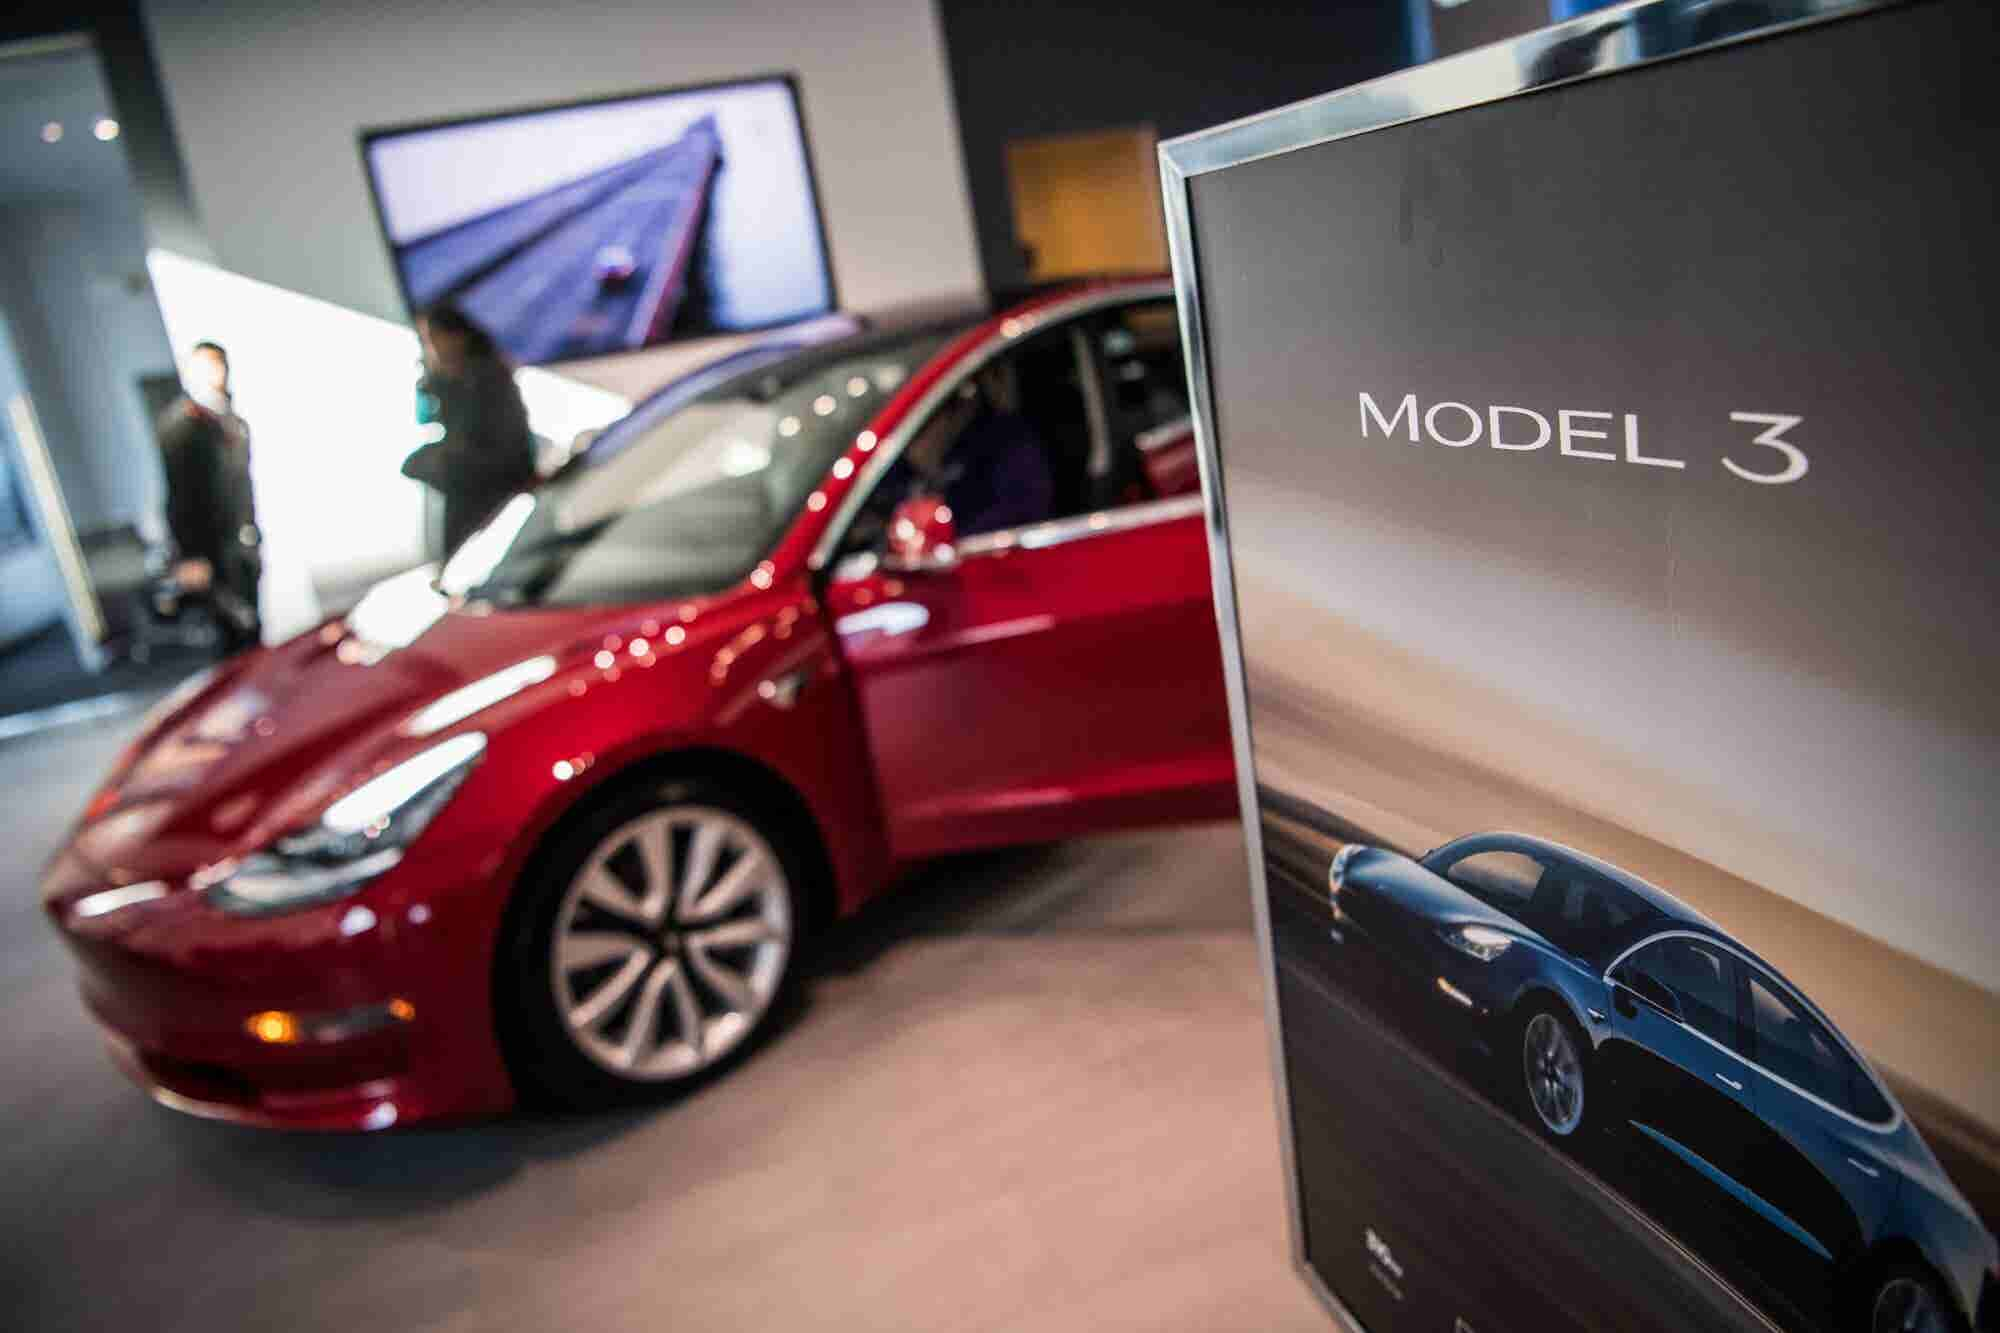 Model 3 Gets Bad Report Card, Leading to Drop for Tesla Stock